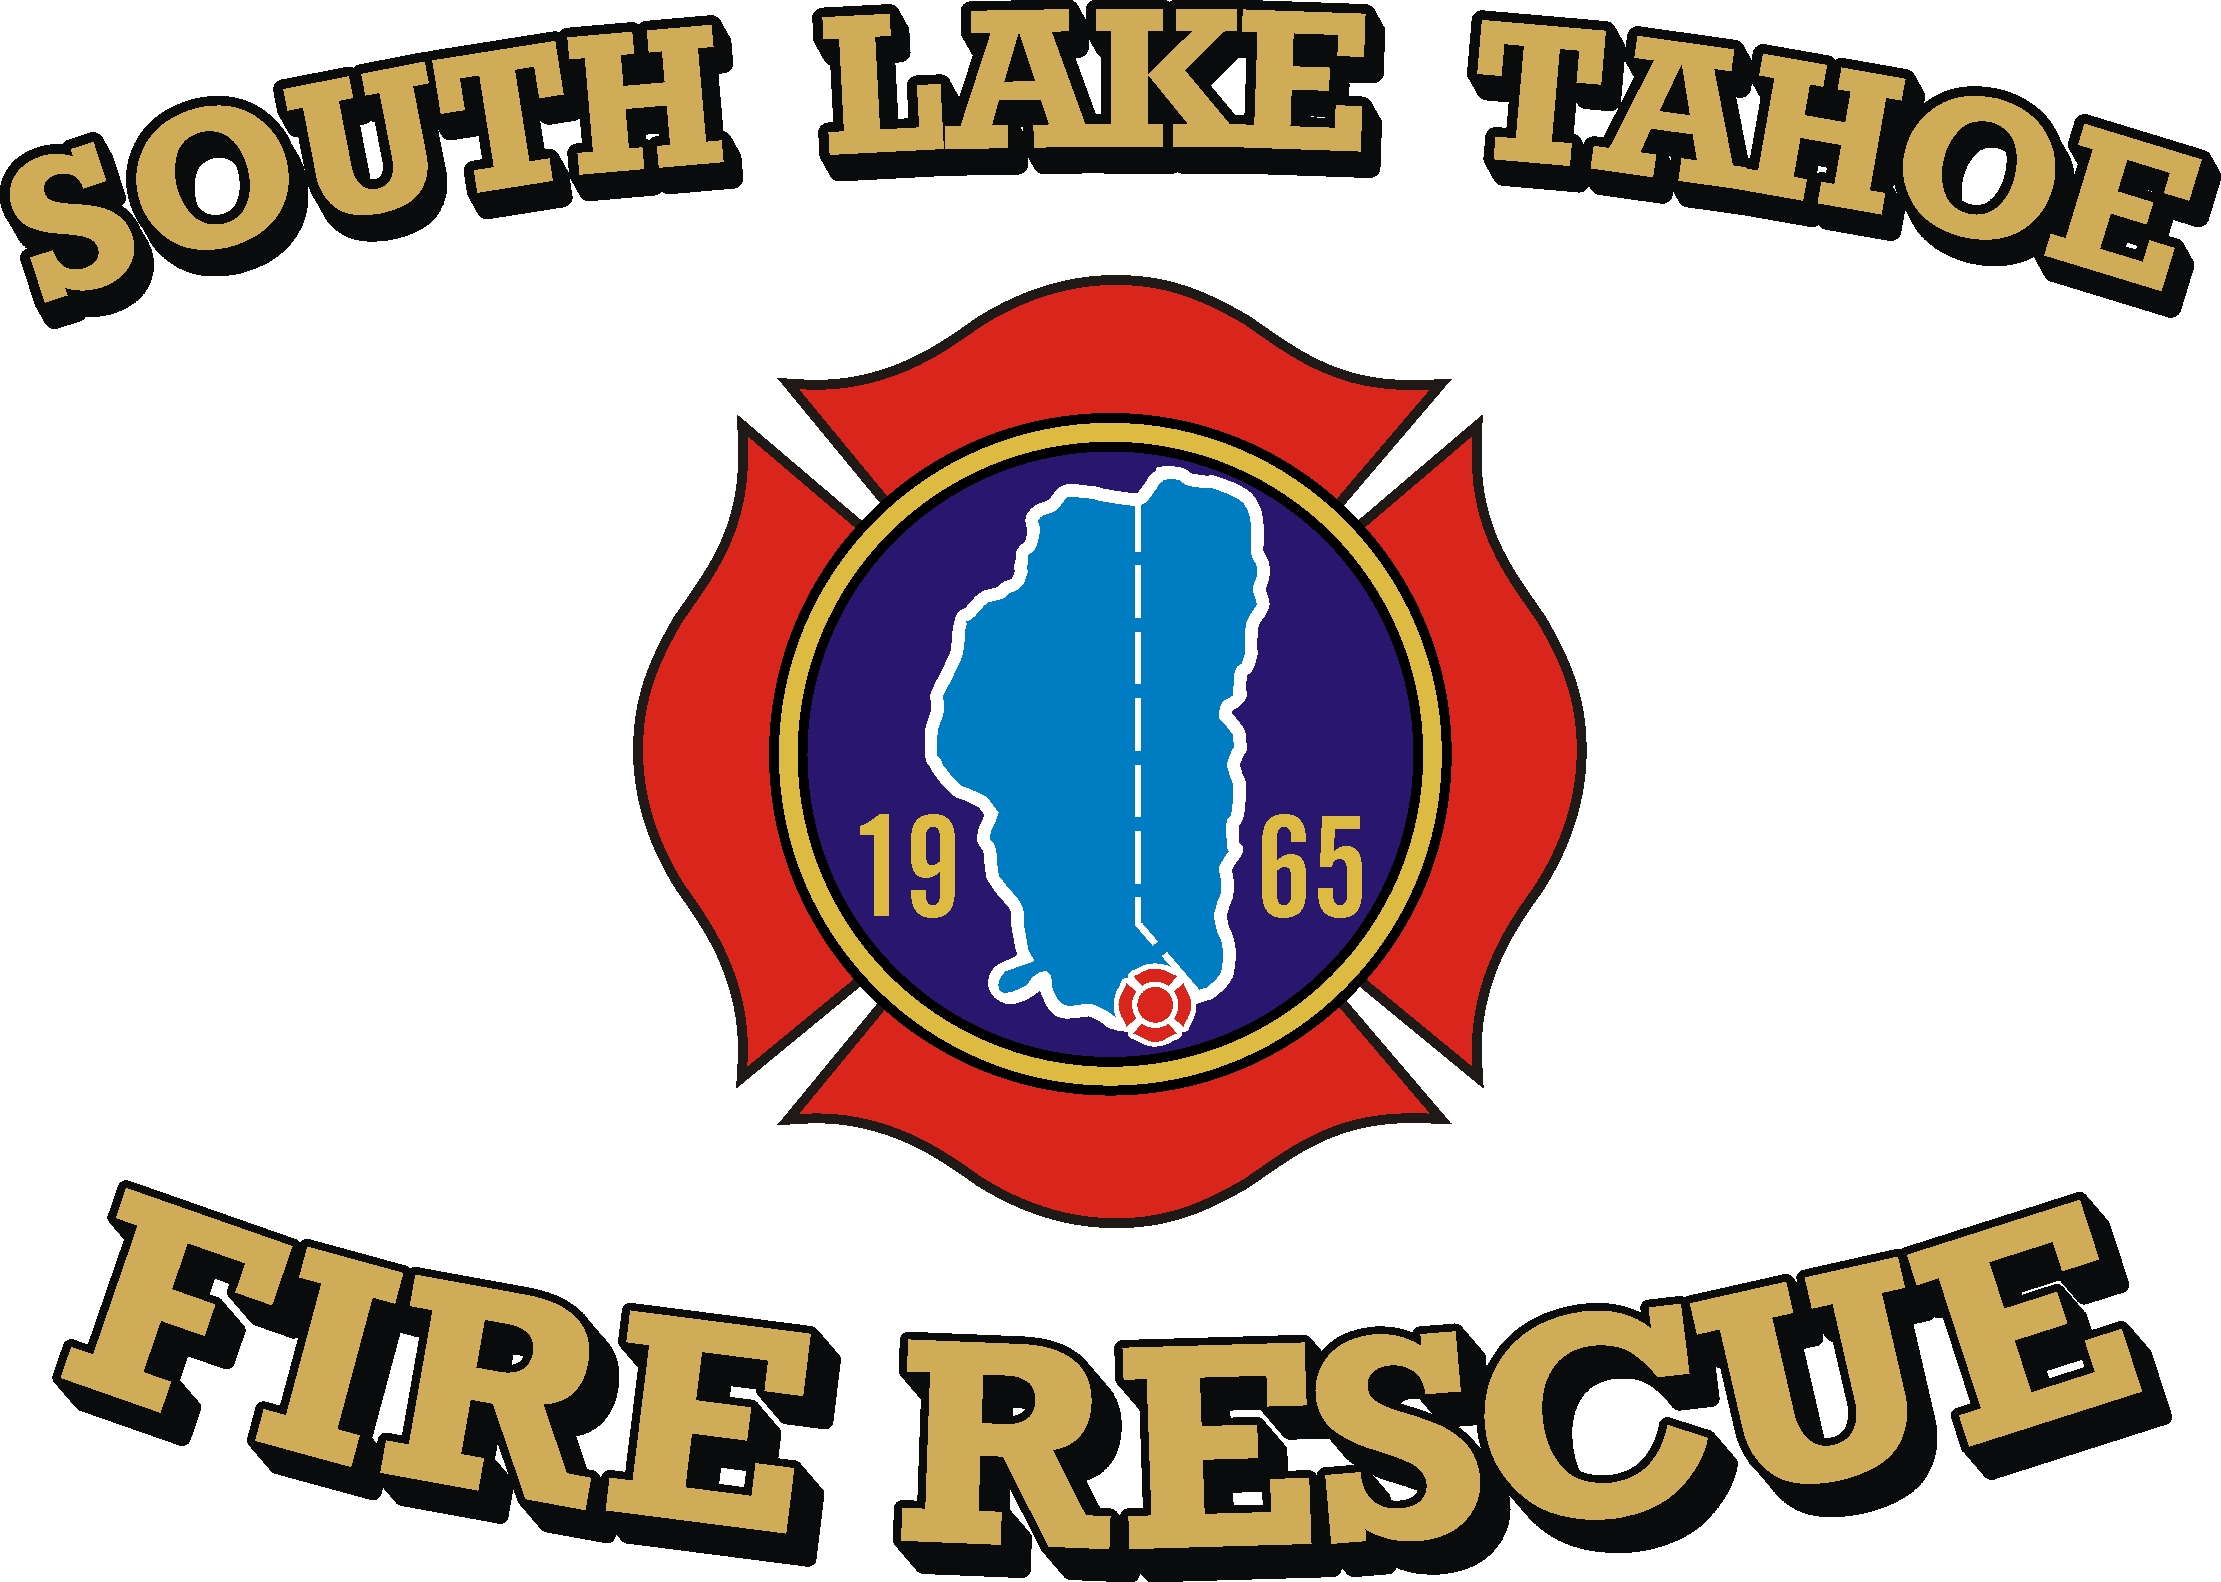 South Lake Tahoe Fire Rescue Logo